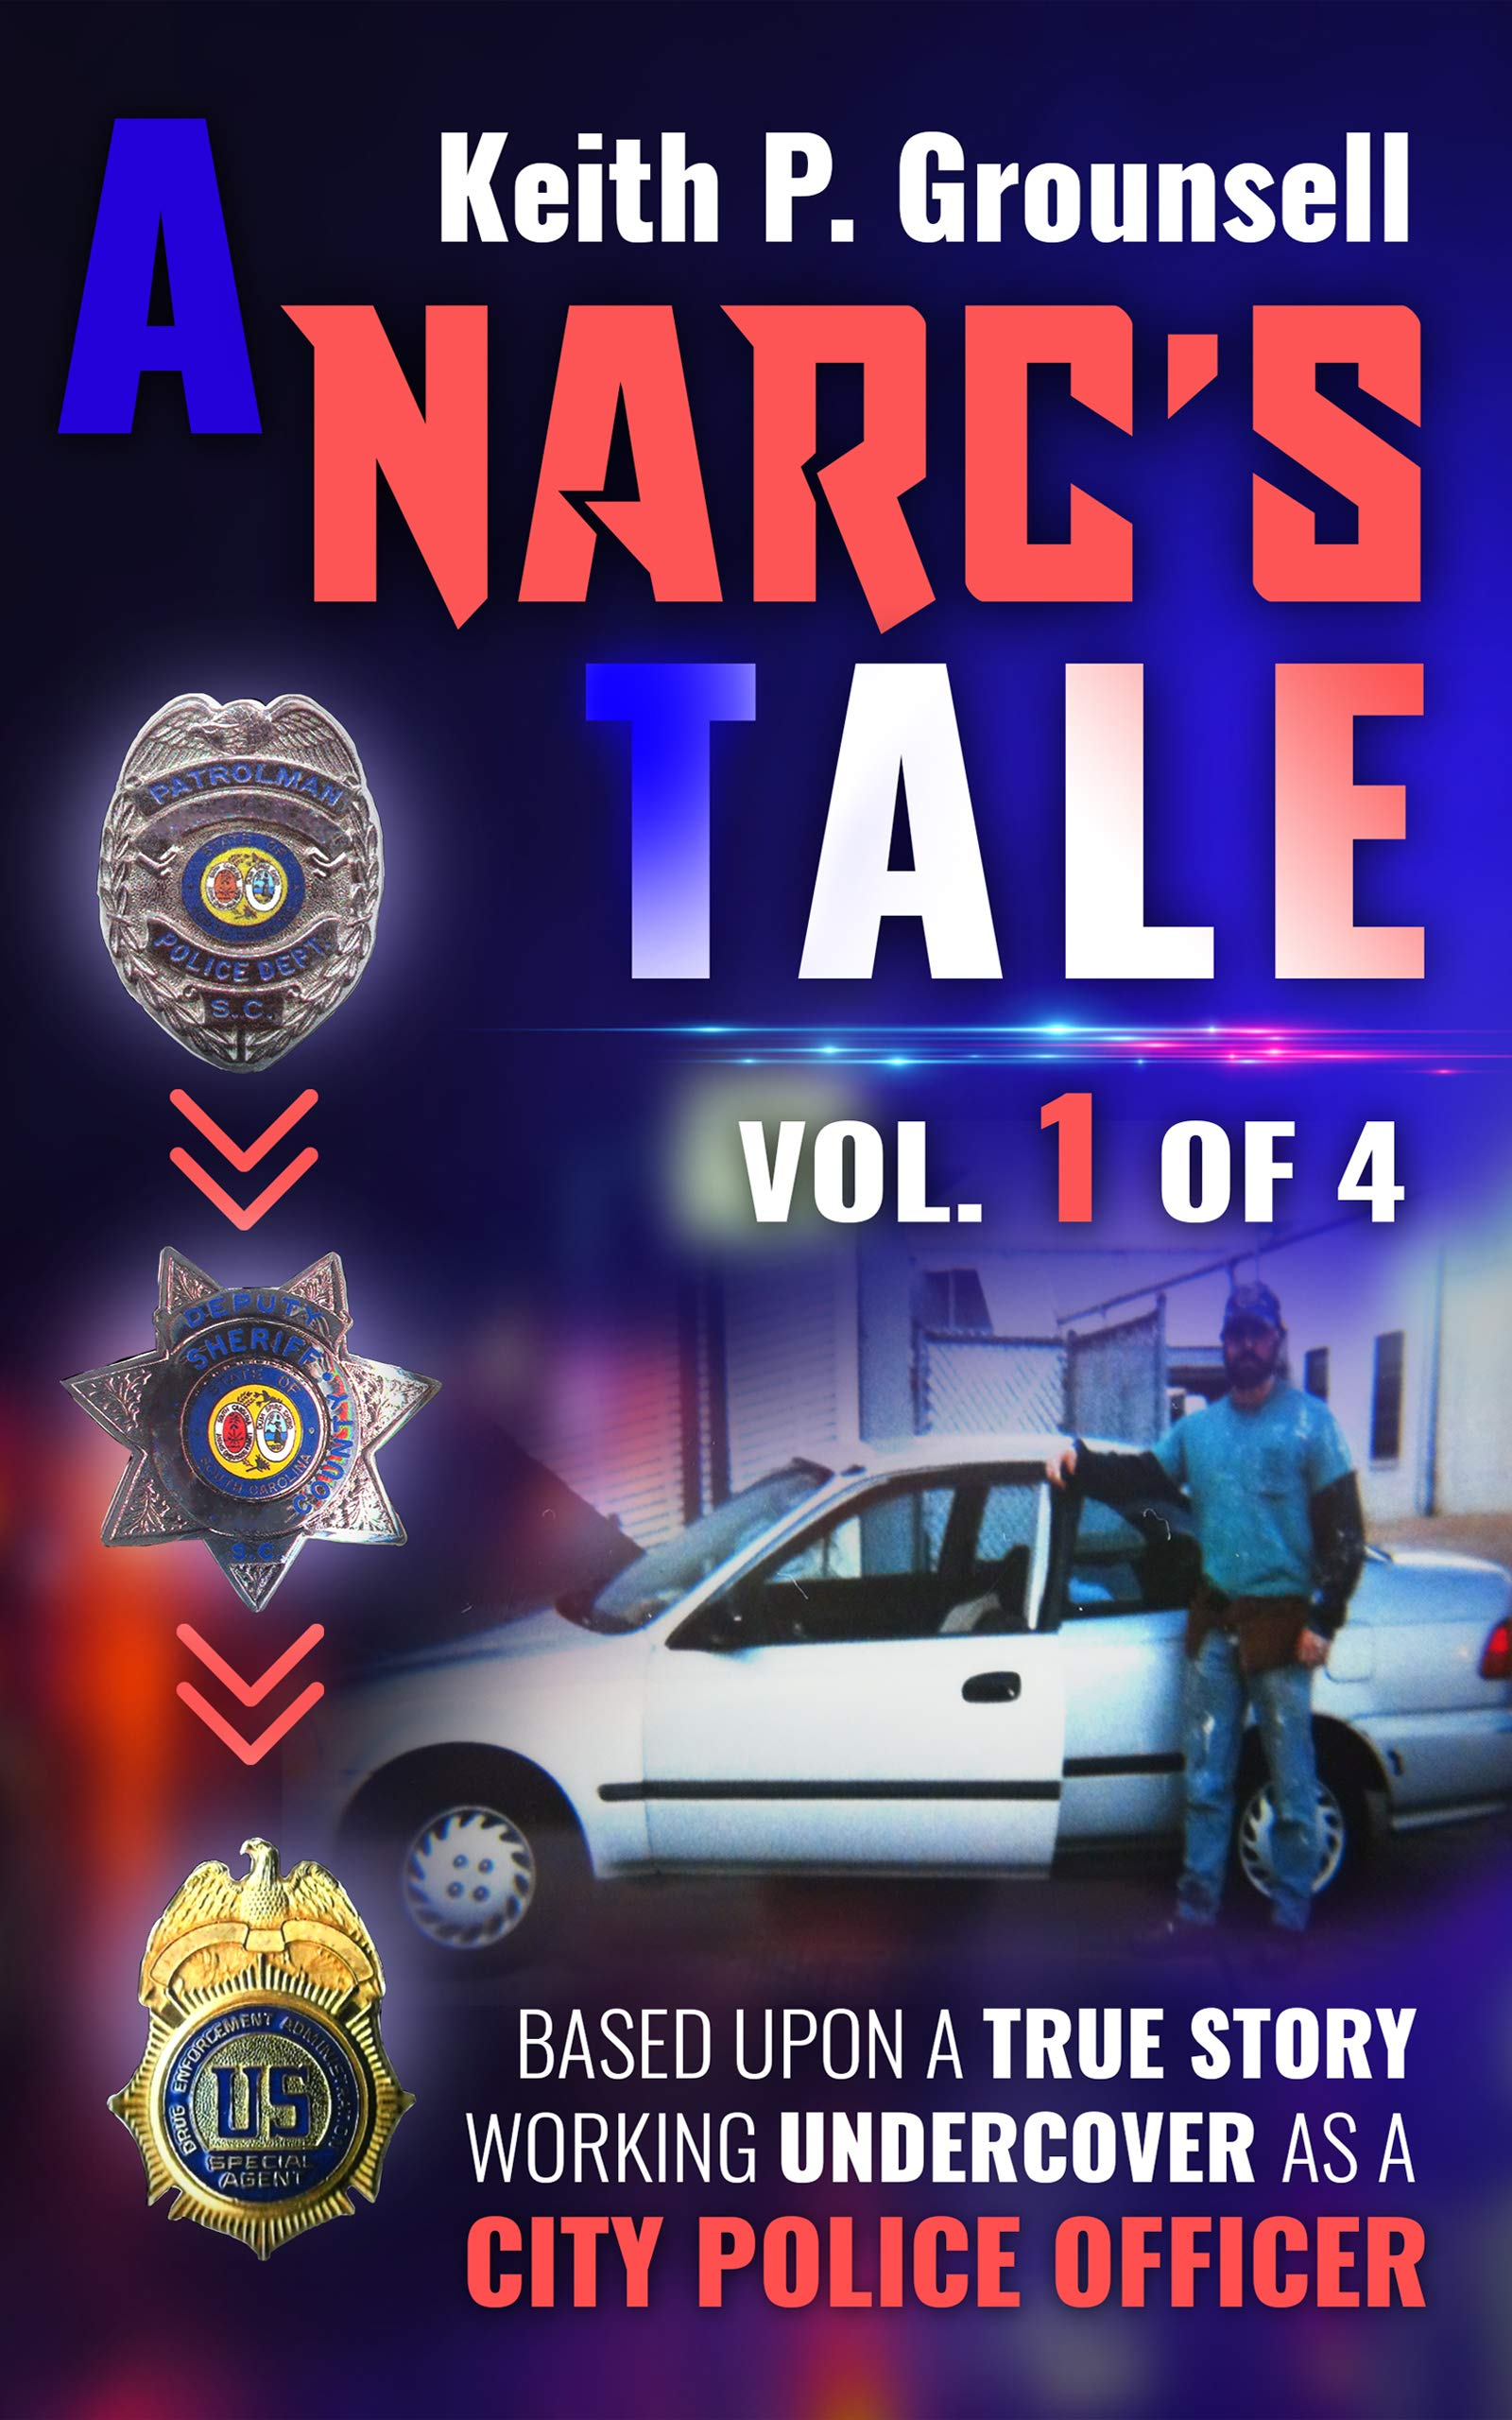 A Narc's Tale: Vol. 1 of 4: Based Upon A True Story Wrking Undercover As A City Police Officer